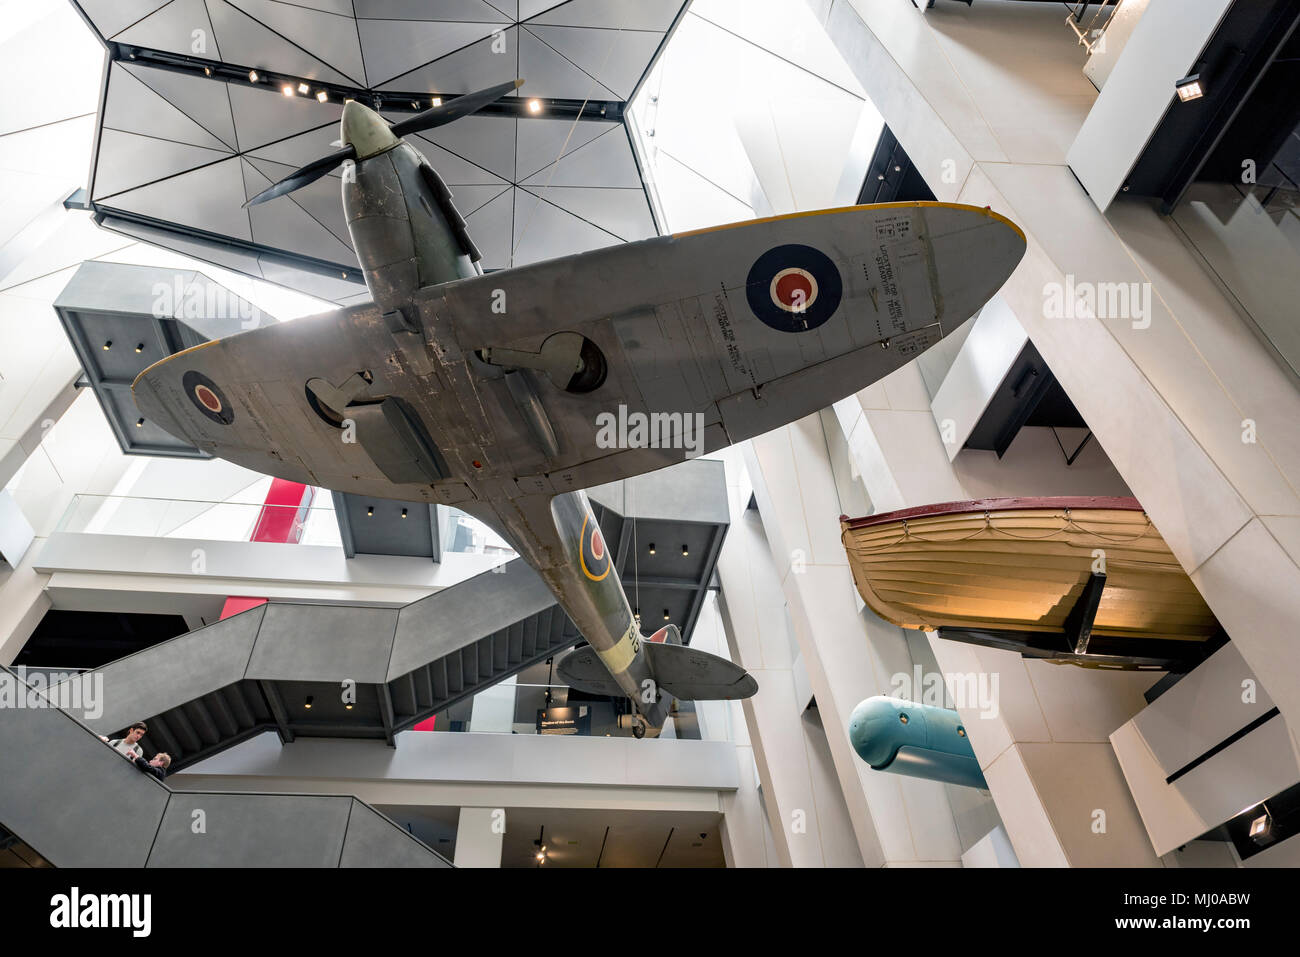 spitfire-on-display-at-the-imperial-war-